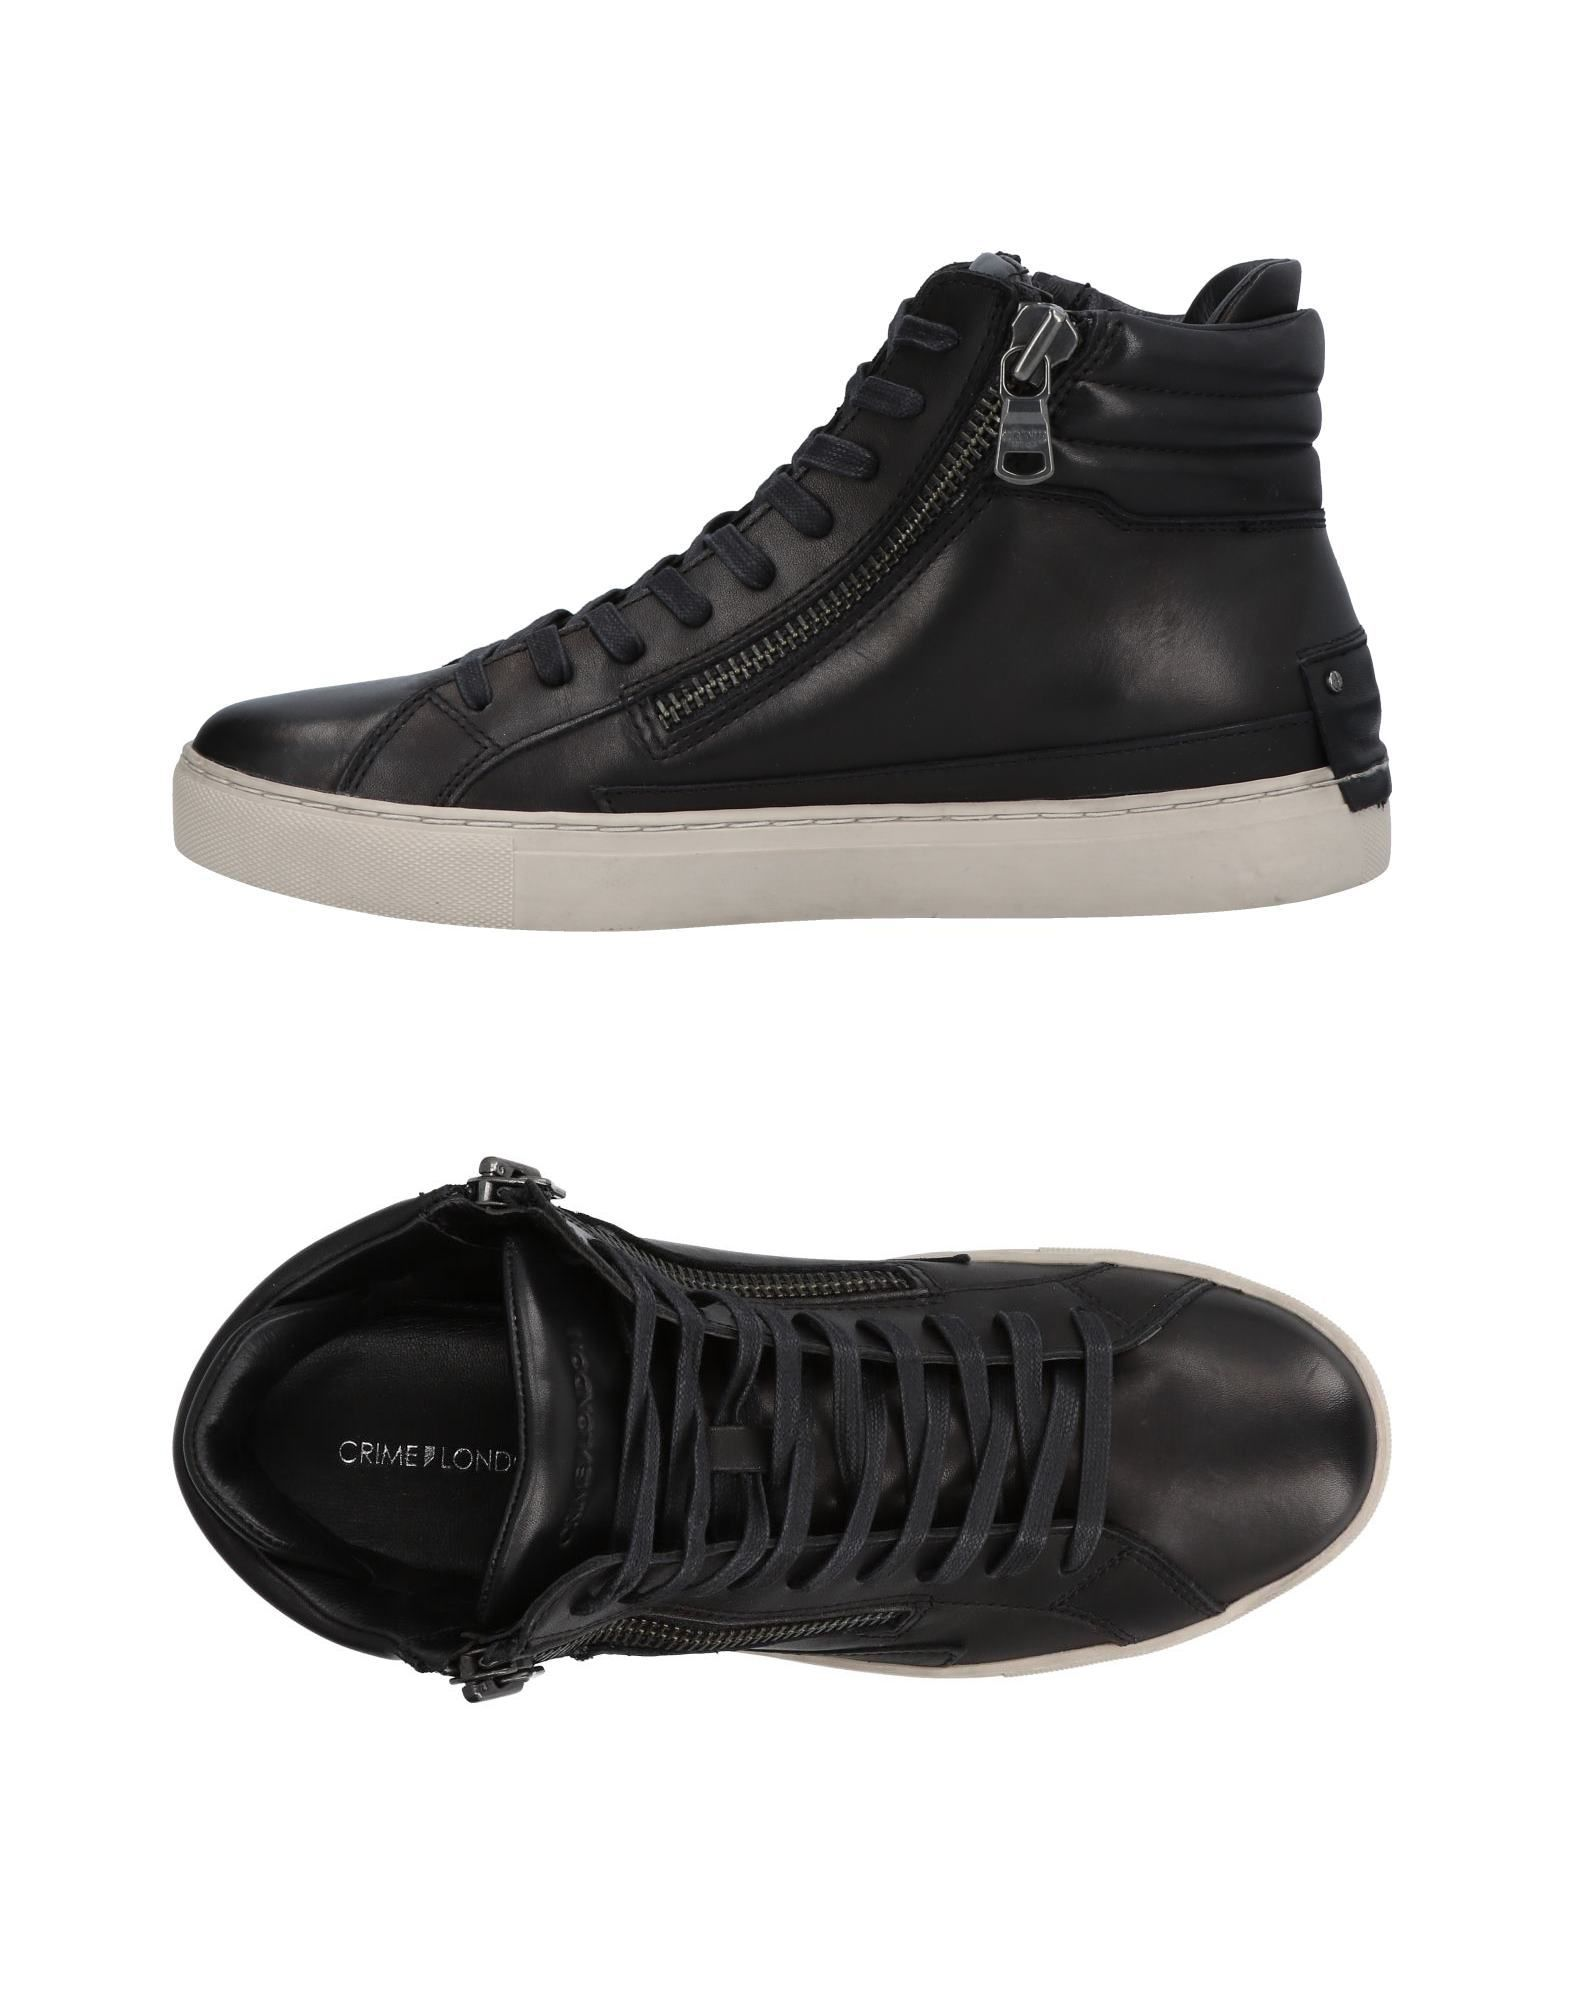 Crime London Sneakers Herren  11467156AR